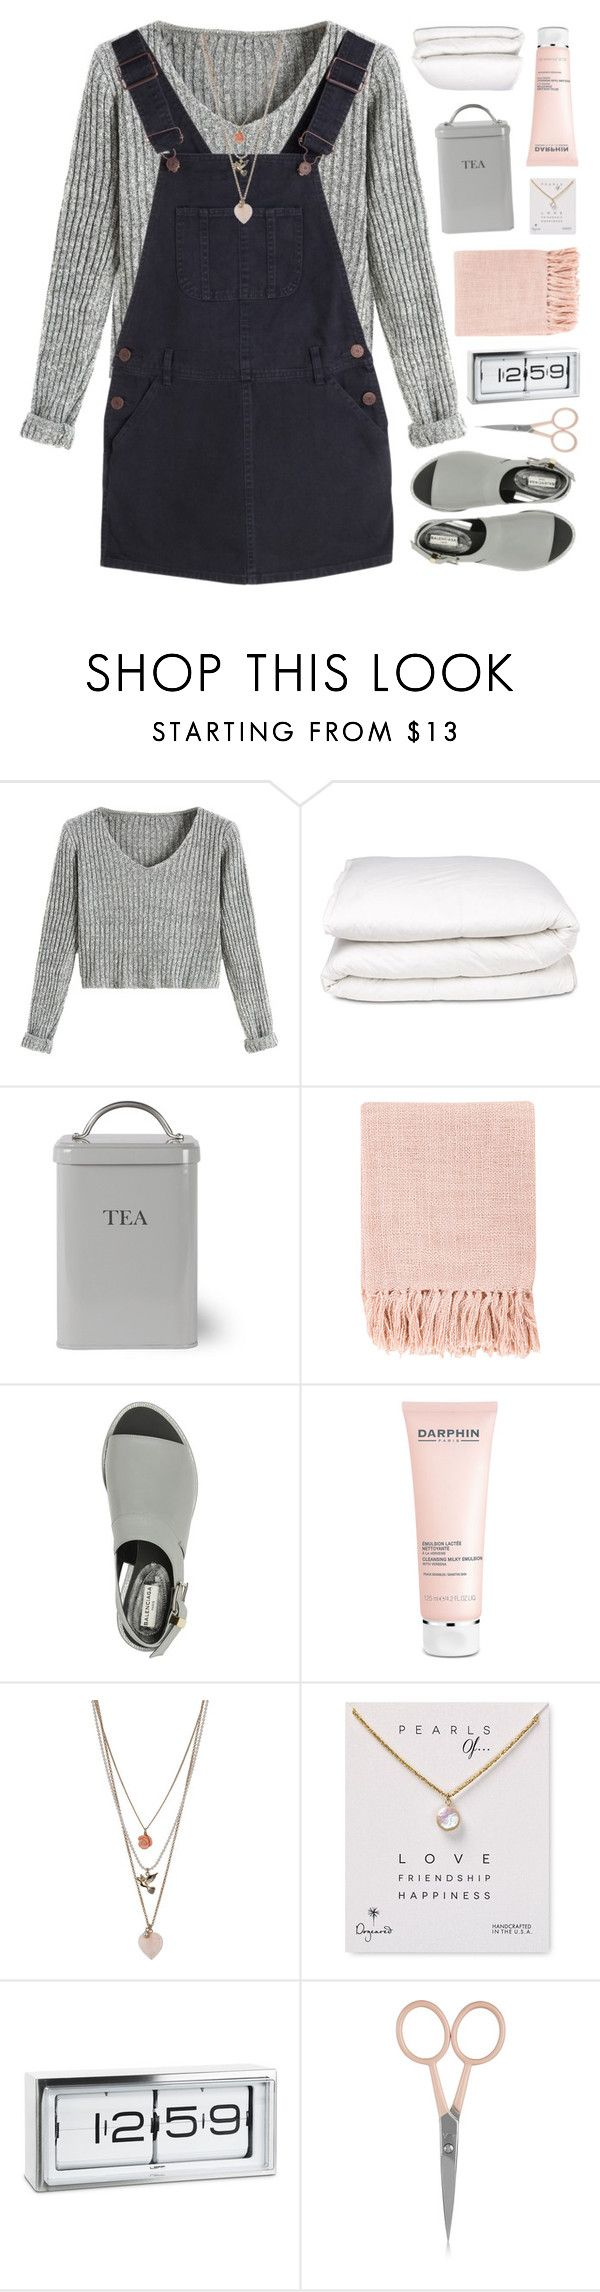 """PEARL OF LOVE"" by emmas-fashion-diary ❤ liked on Polyvore featuring Selfridges, Garden Trading, Surya, Balenciaga, Darphin, Miss Selfridge, Dogeared, LEFF Amsterdam and Anastasia Beverly Hills"